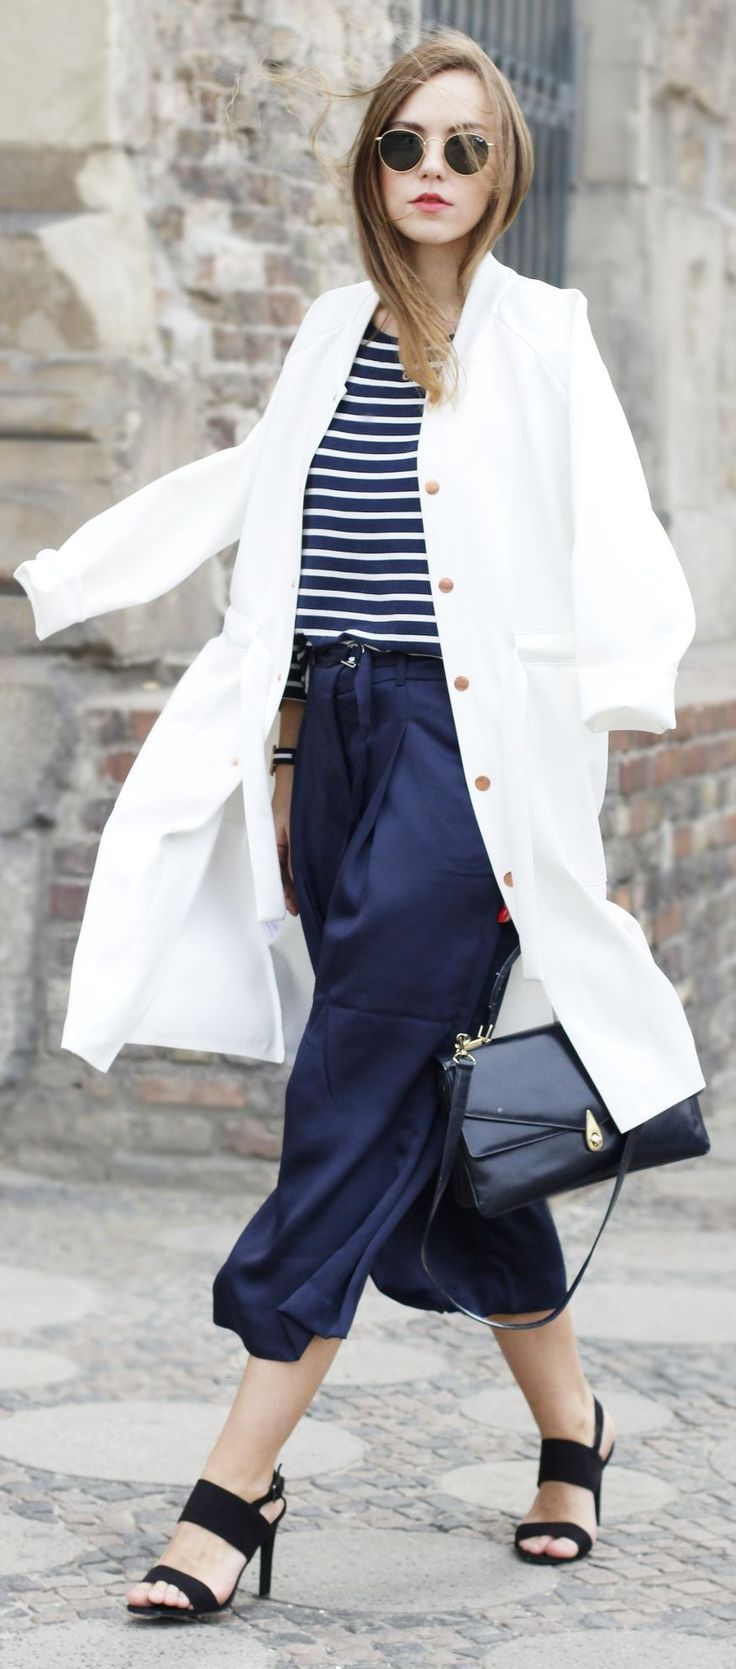 2018 Nautical Fashion Trend For Women Best Street Style Ideas (27)